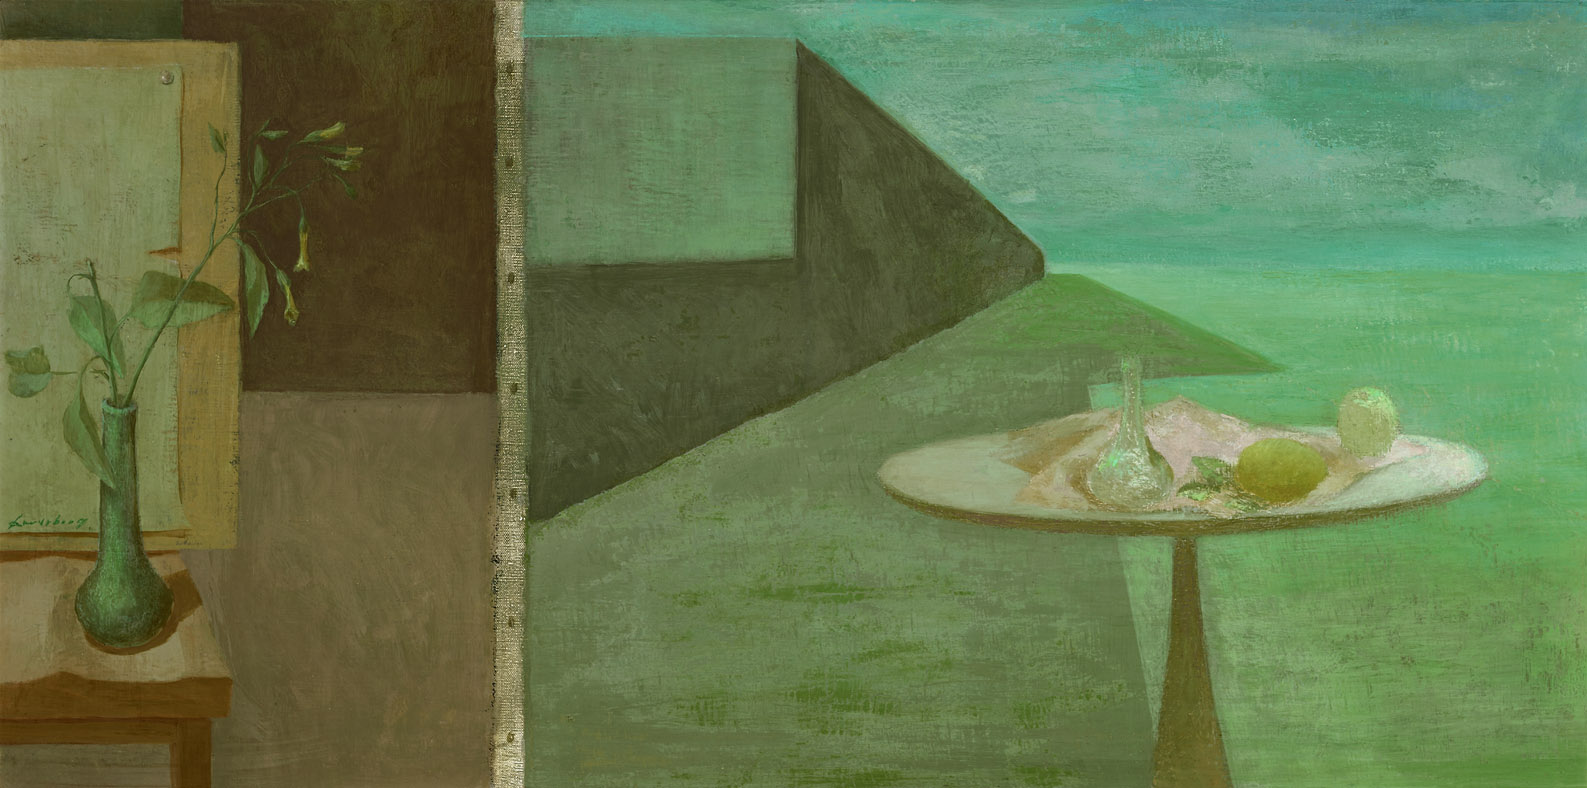 Enigma of Reality , 1955  oil on canvas 20 x 40 inches; 50.8 x 101.6 centimeters